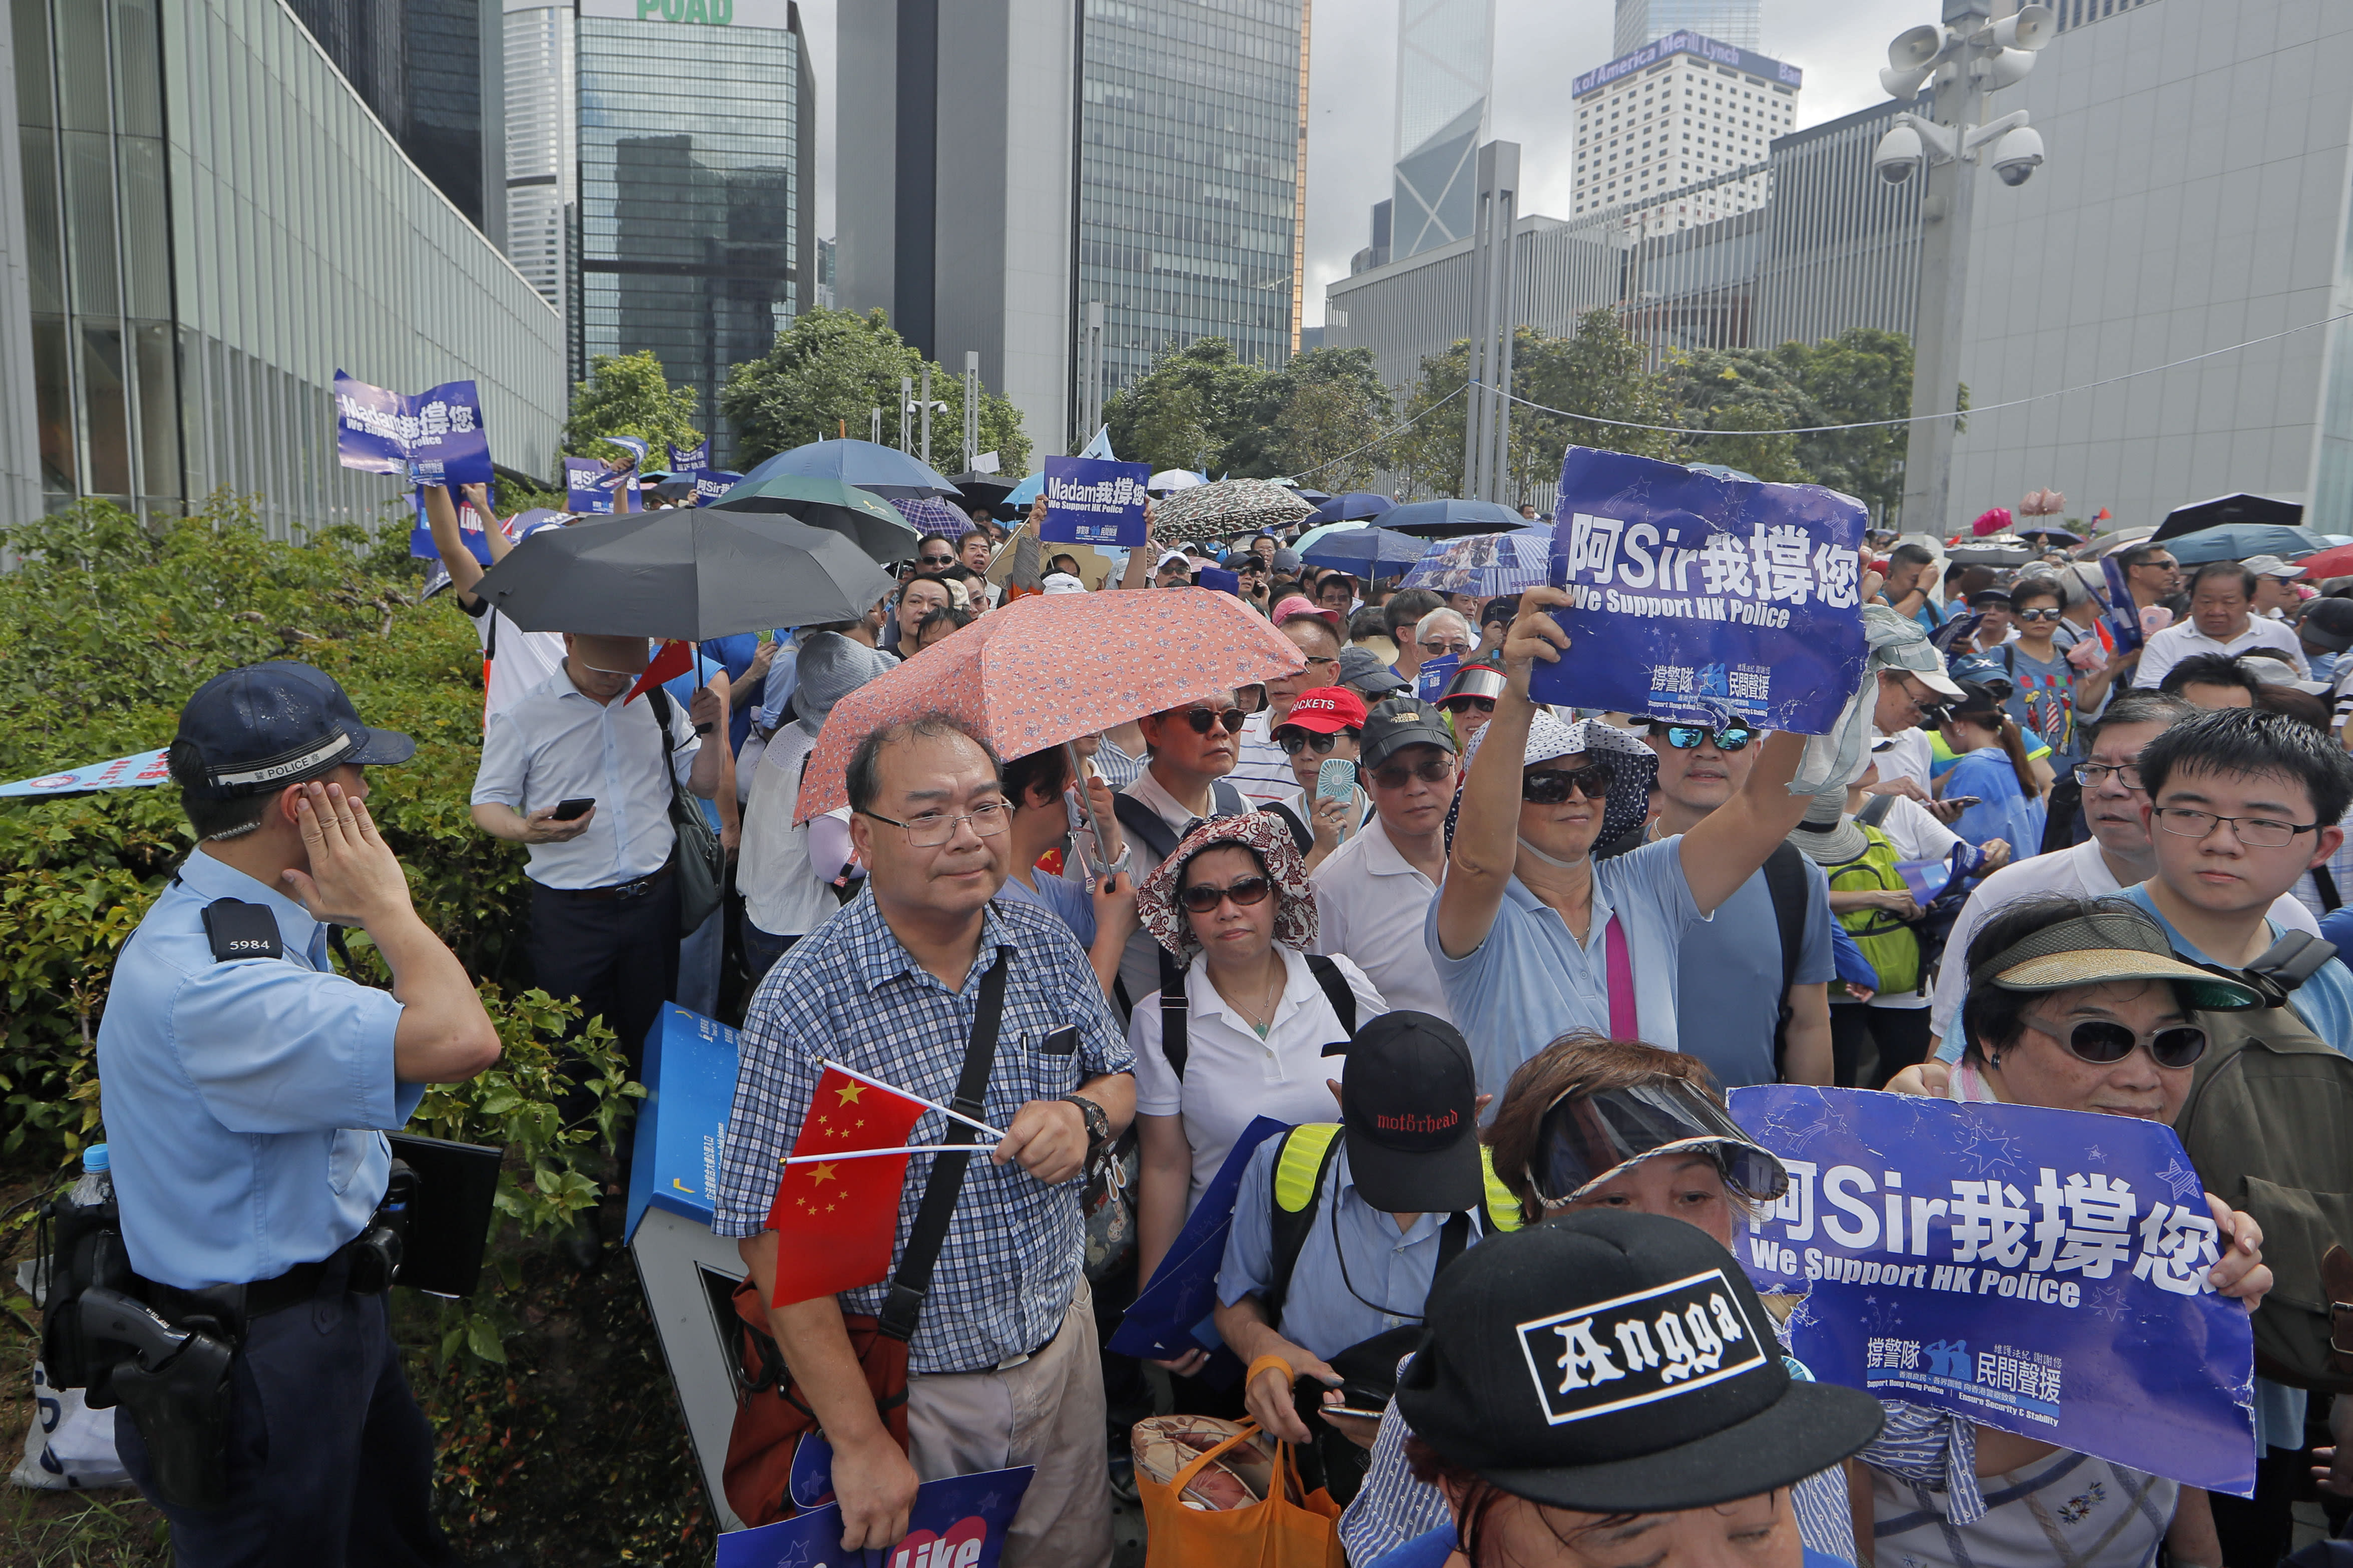 """Pro-China's supporters hold Chinese flags and placards read """"We support HK police"""" during a rally outside Legislative Council Complex in Hong Kong, Sunday, June 30, 2019. Supporters rallied in support of the police at Tamar Park (AP Photo/Kin Cheung)"""